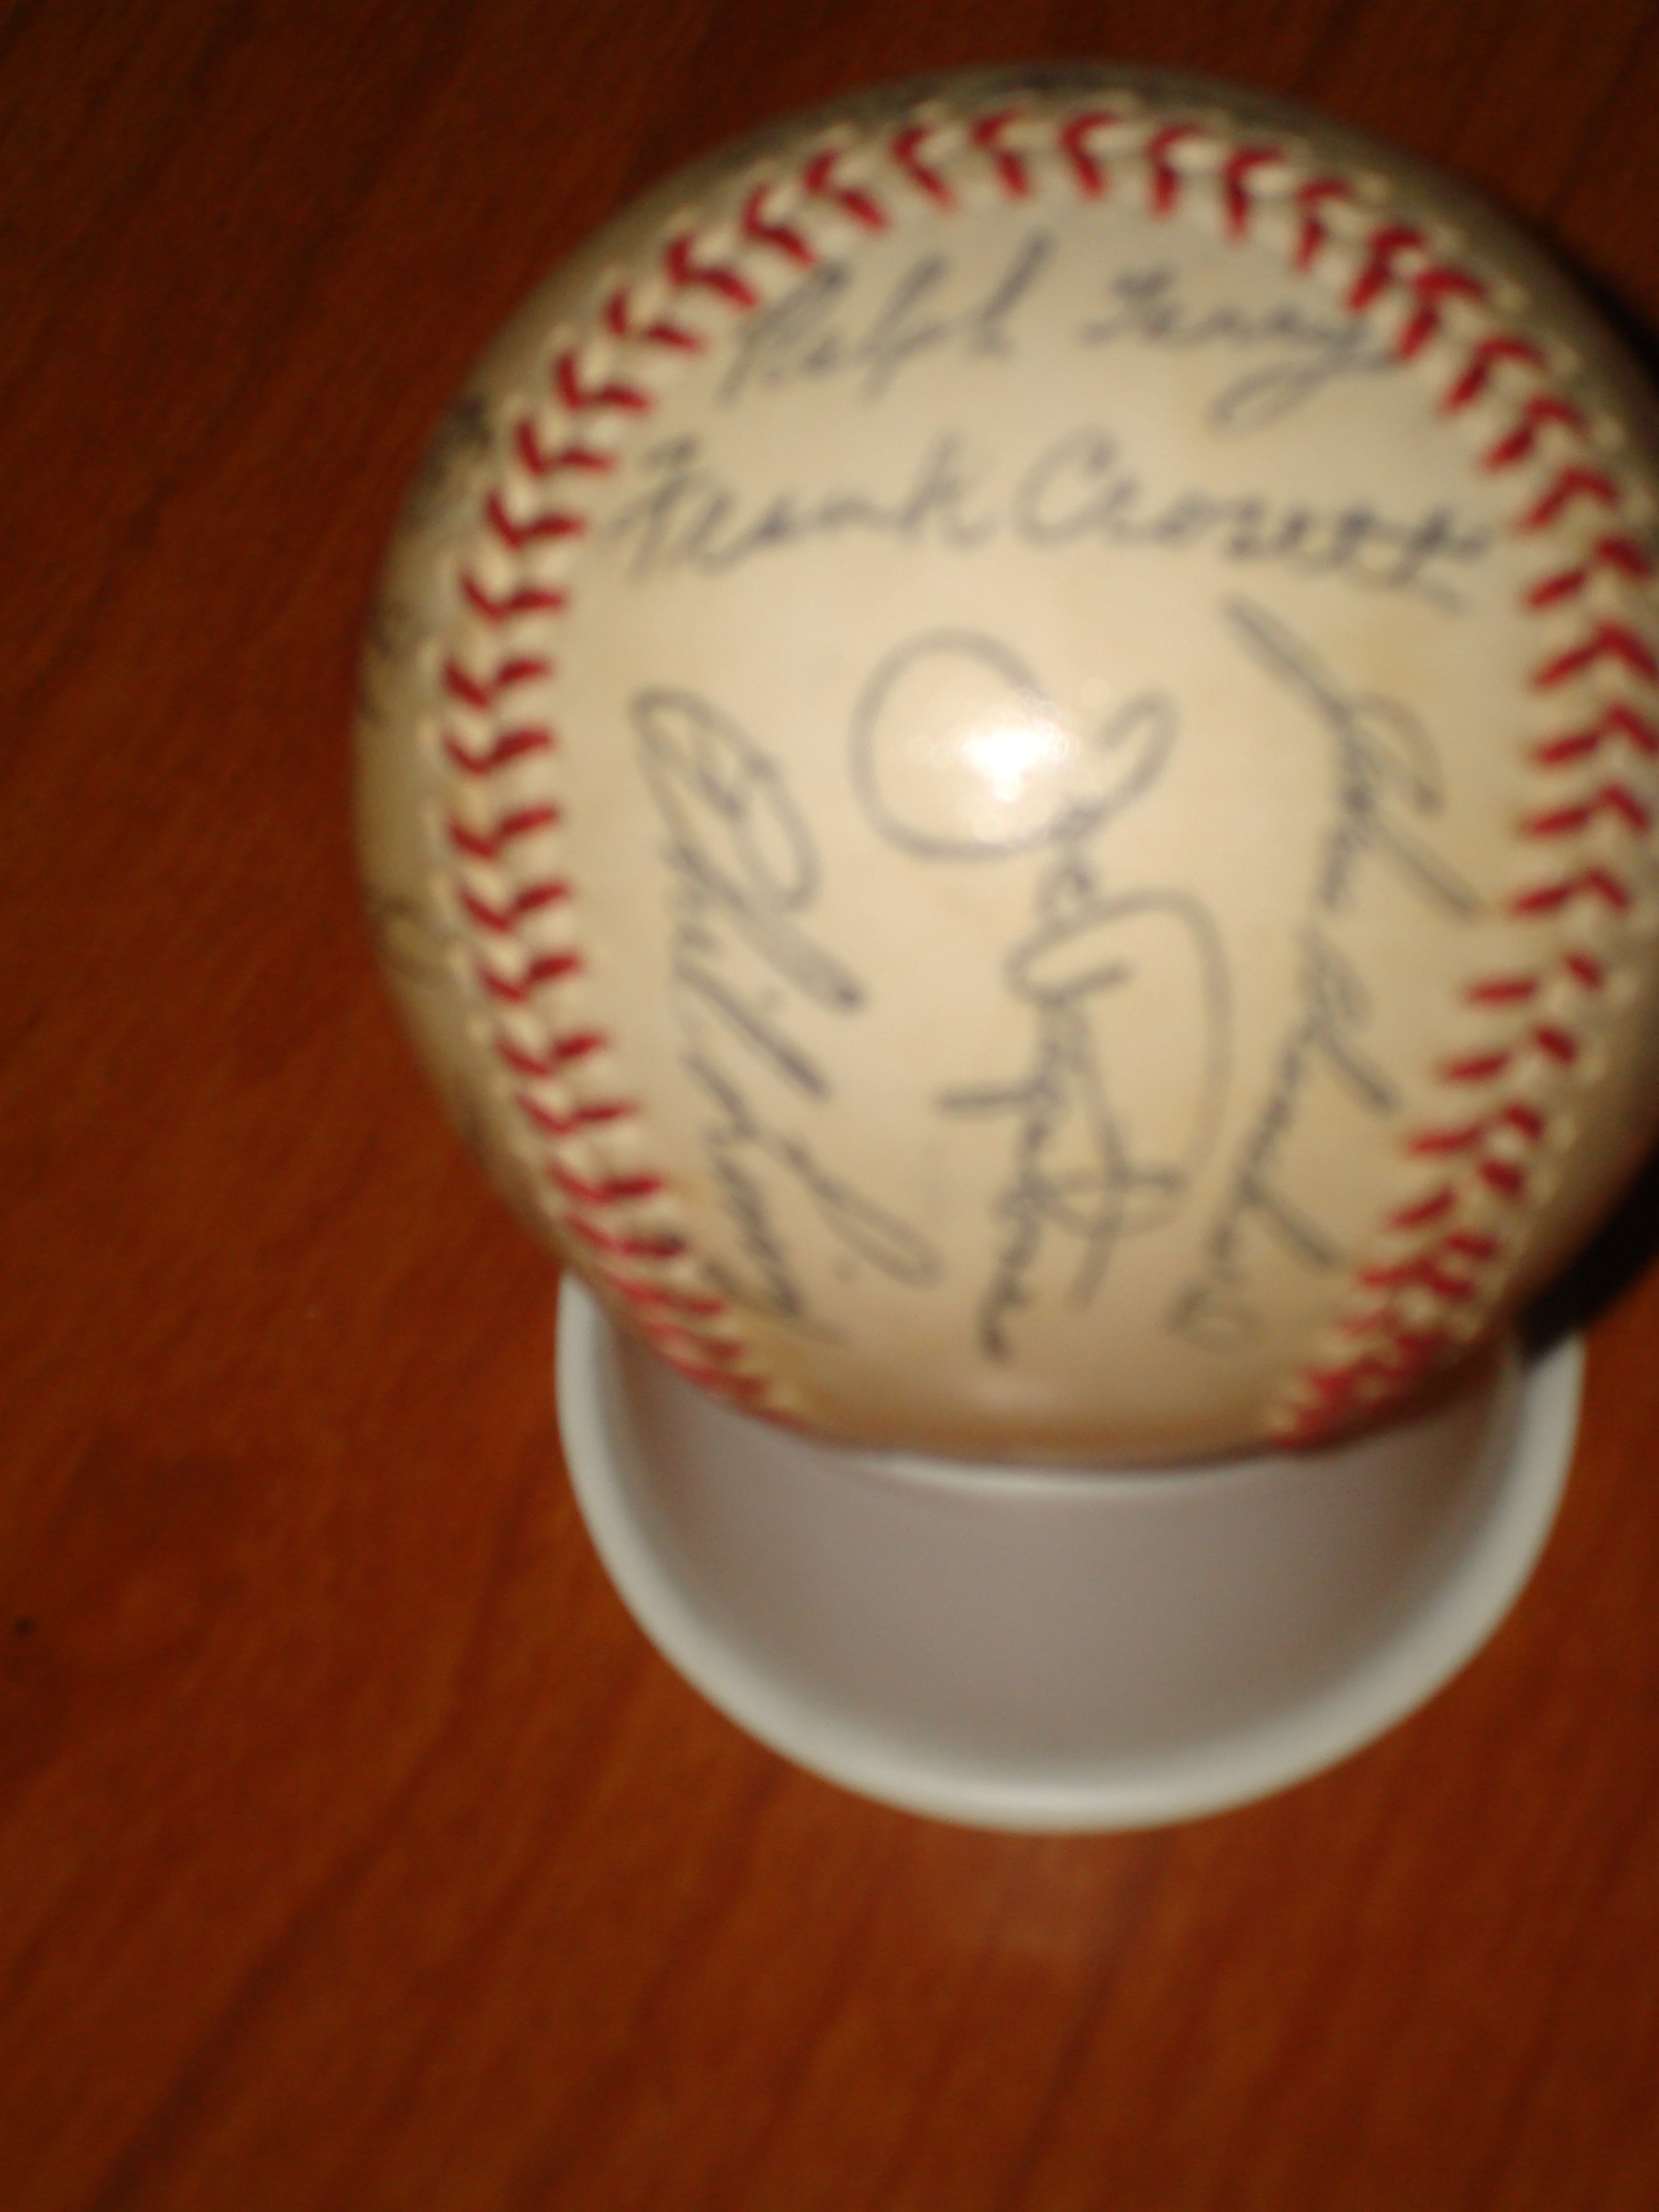 Official Autograph Team Ball 1962 World Champion New York Yankees featuring Ralph Terry, Joe Pepitone, Frankie Crossetti, Phil Linz